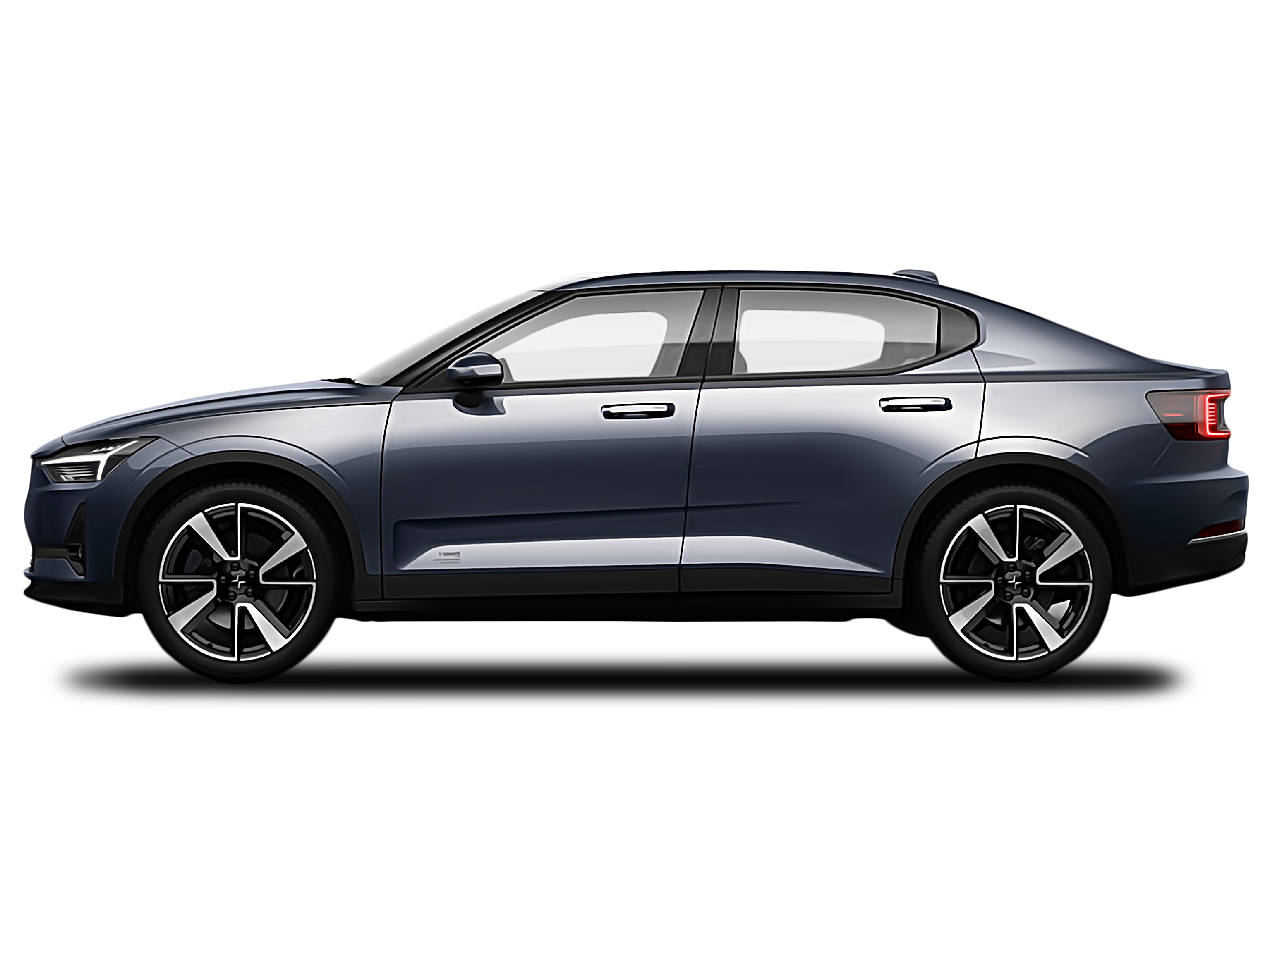 Side view of the Polestar 2